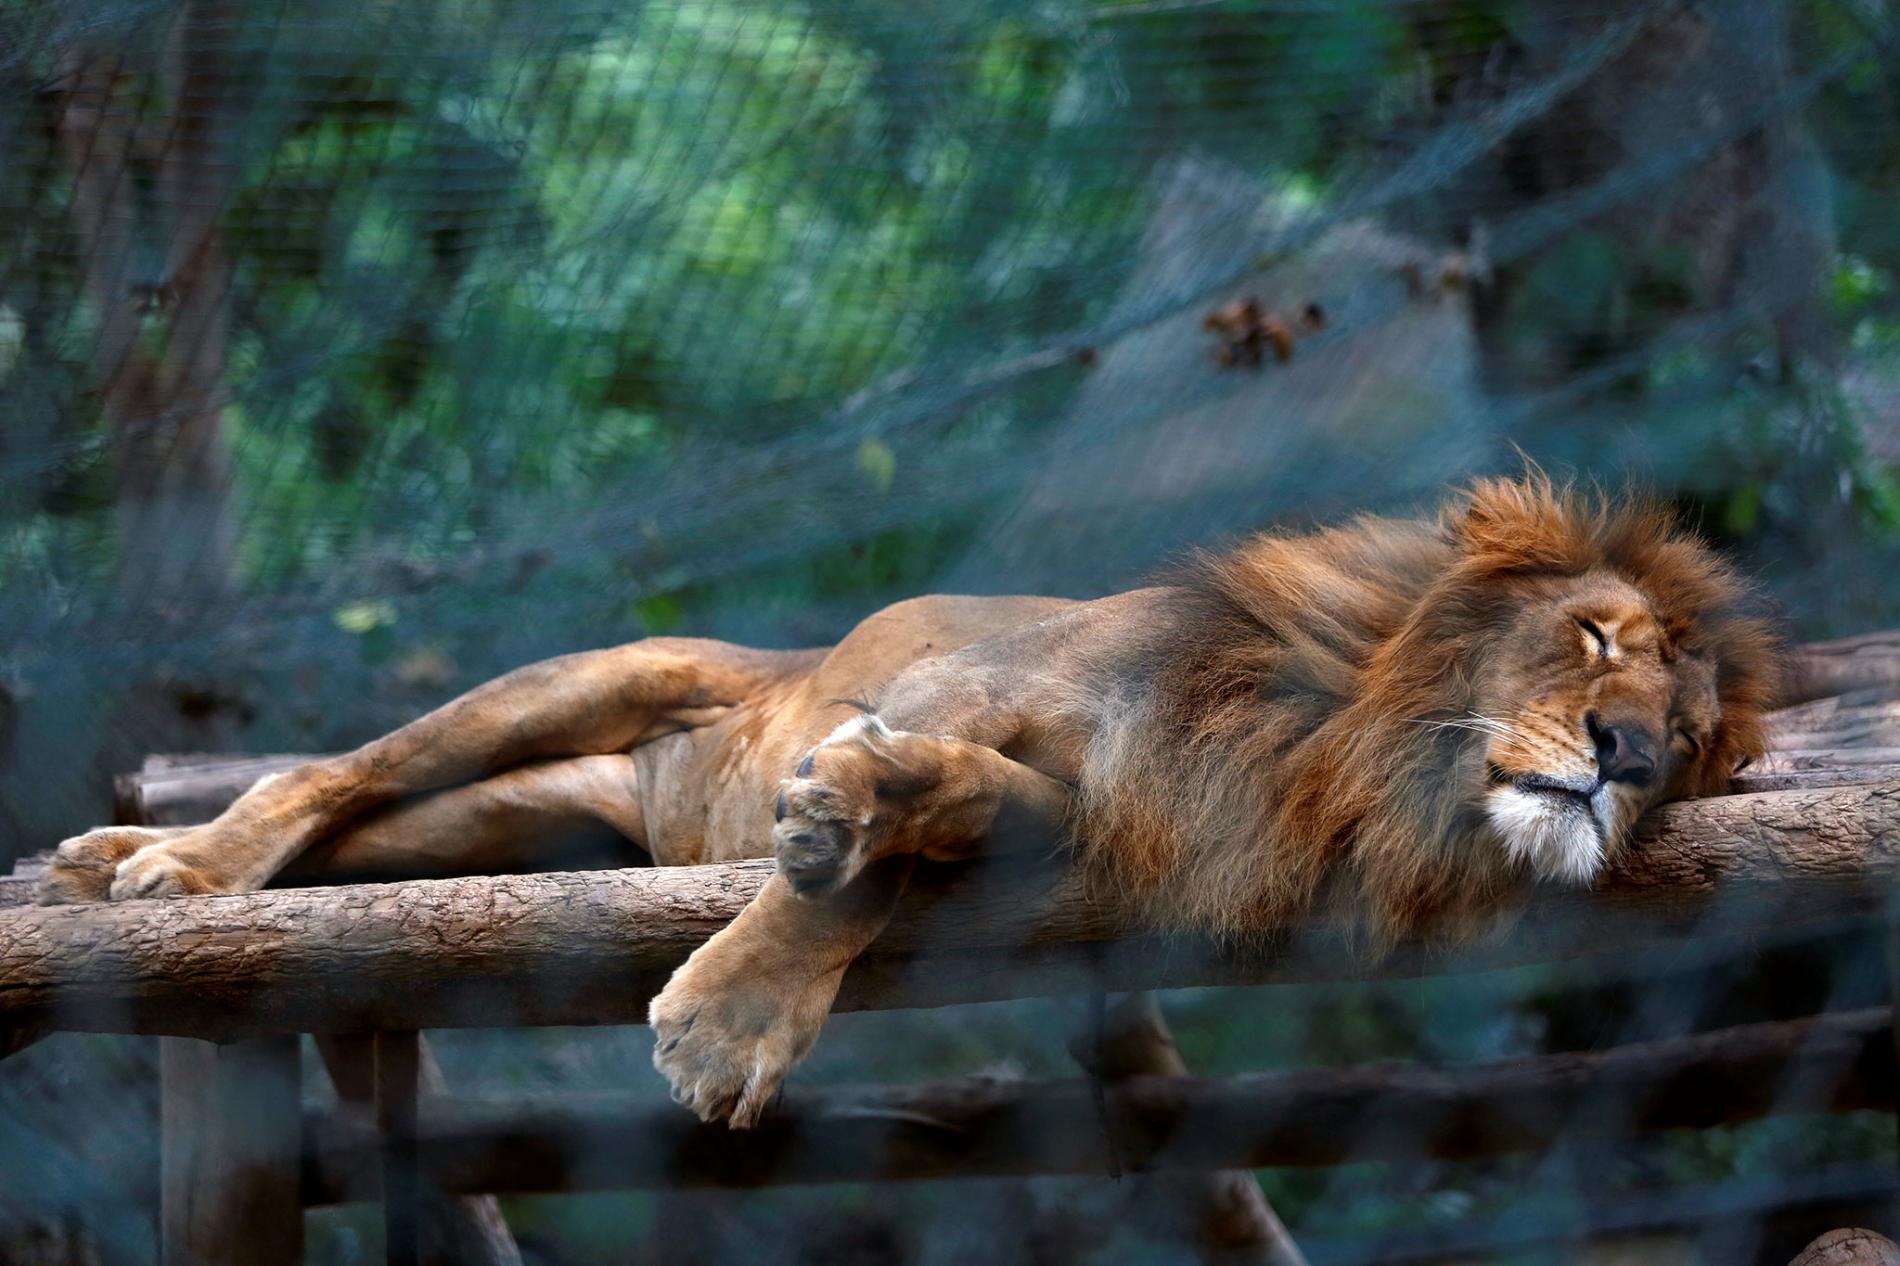 A malnourished lion sleeping in the zoo.